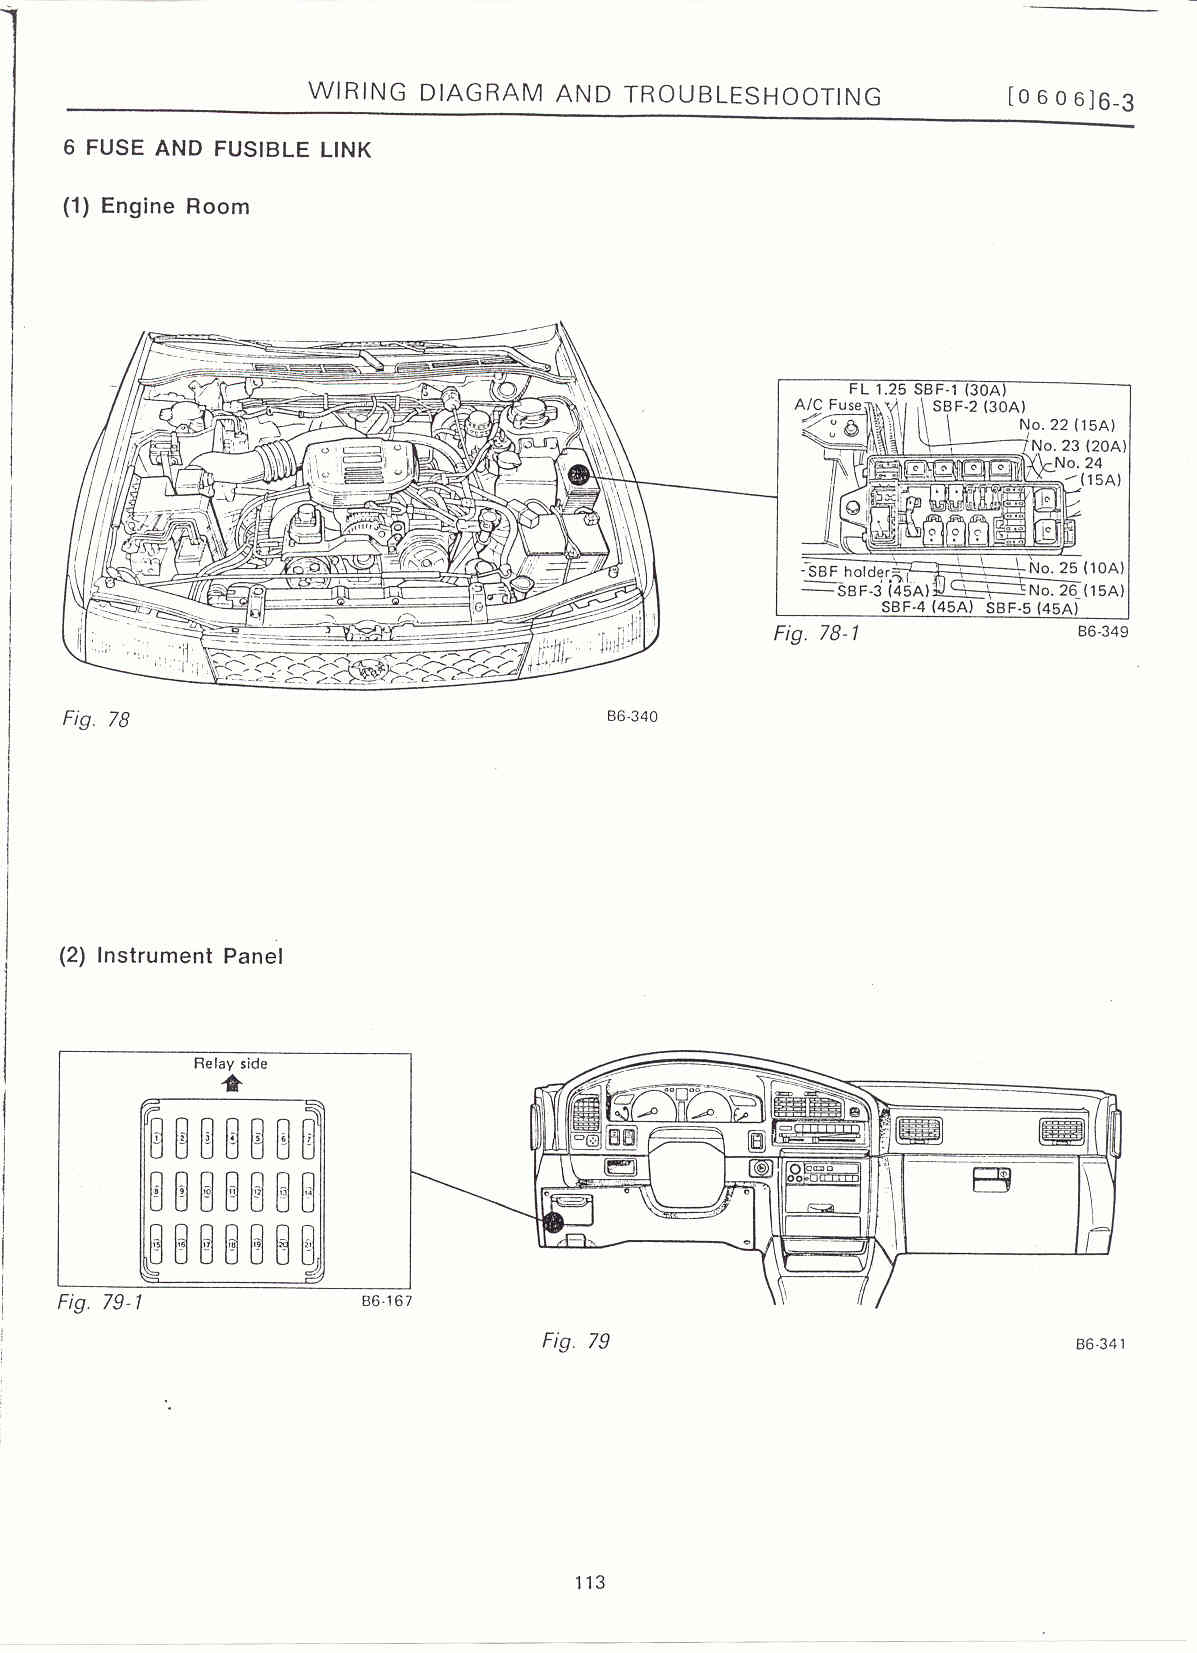 Subaru Outback Engine Room Fuse Box 35 Wiring Diagram Images 97 Headlight 6 3 Electrical Unit Location14 Surrealmirage Legacy Swap Info Notes